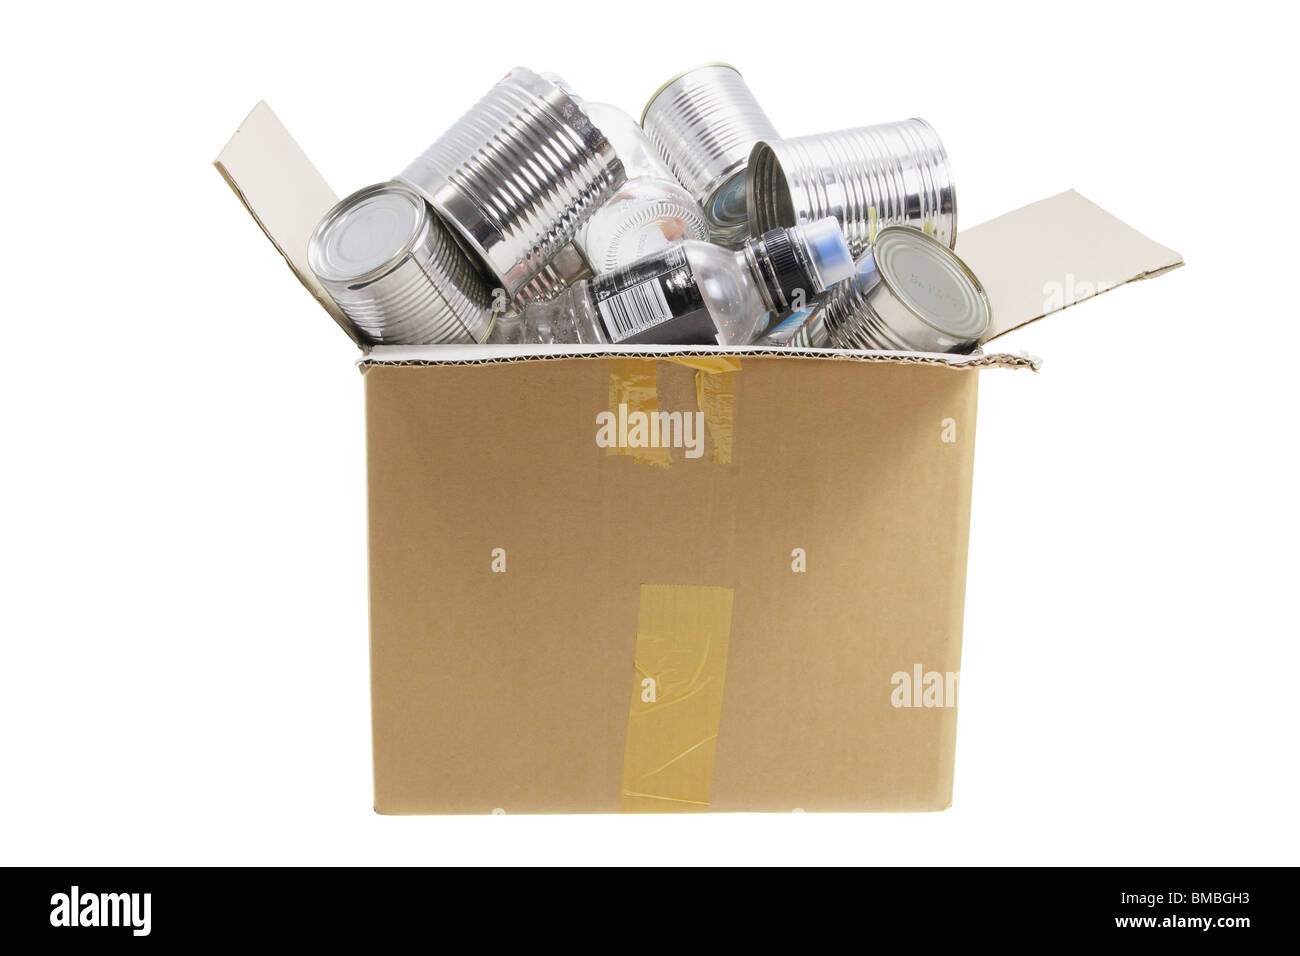 Box of Trash for Recycle - Stock Image